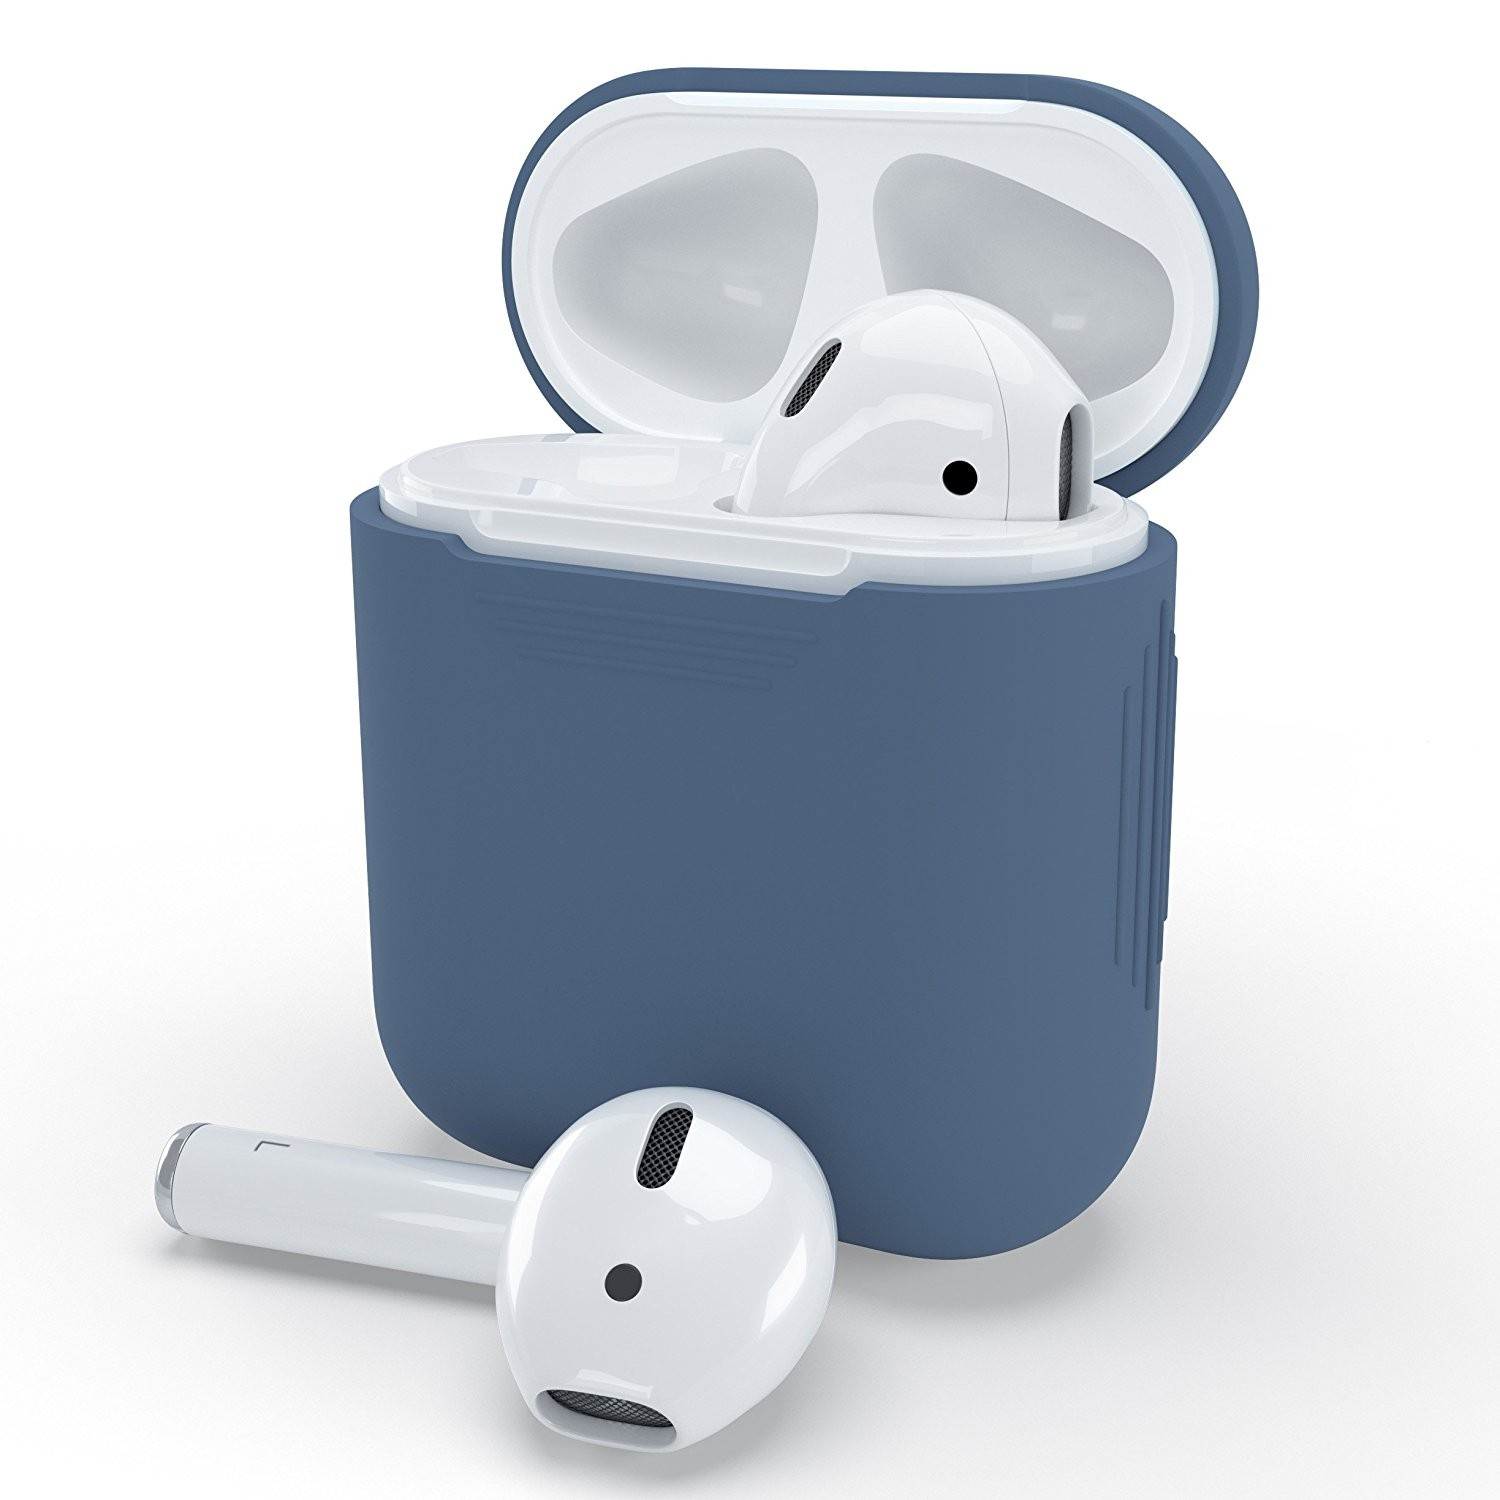 PodSkinz Protective Silicone Cover and Skin for Apple Airpods and Airpods 2 Charging Case - Cobalt Blue, B076W7K7L7